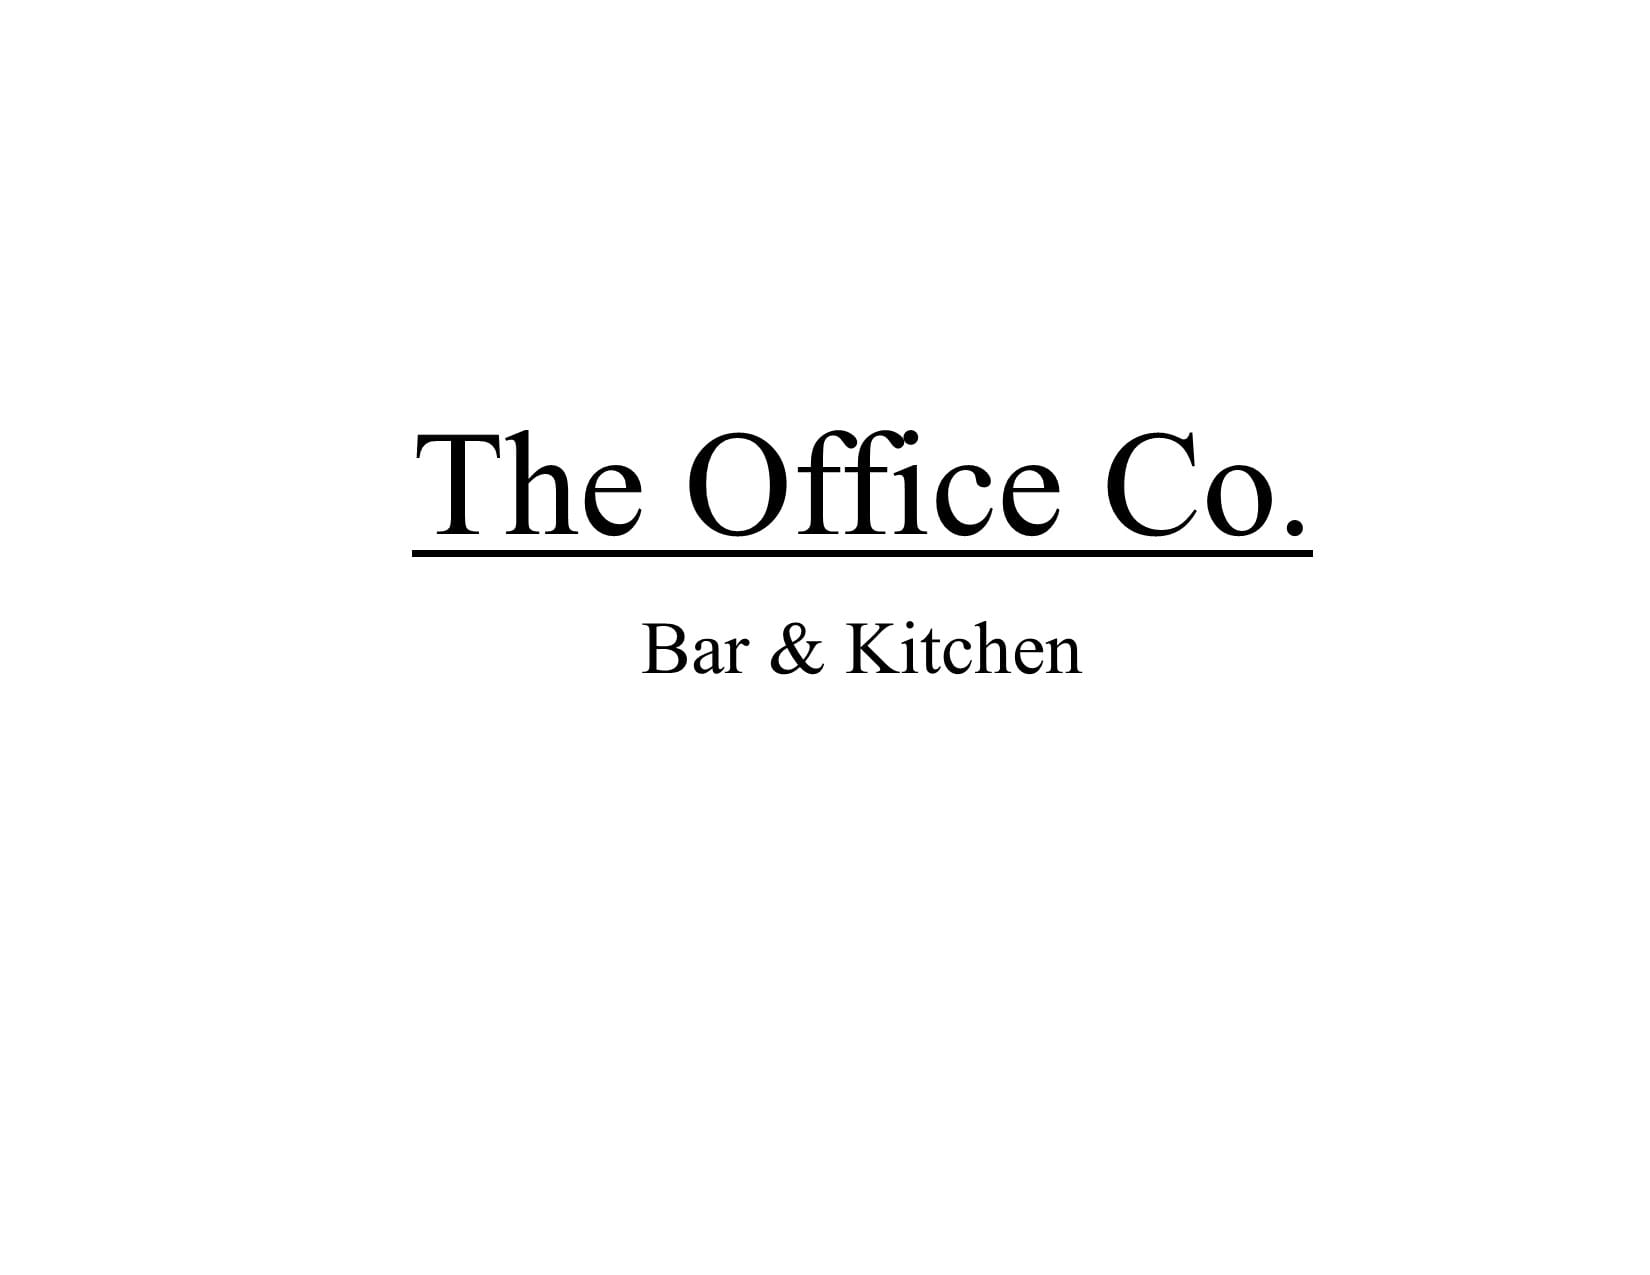 The Office Co. Bar & Kitchen